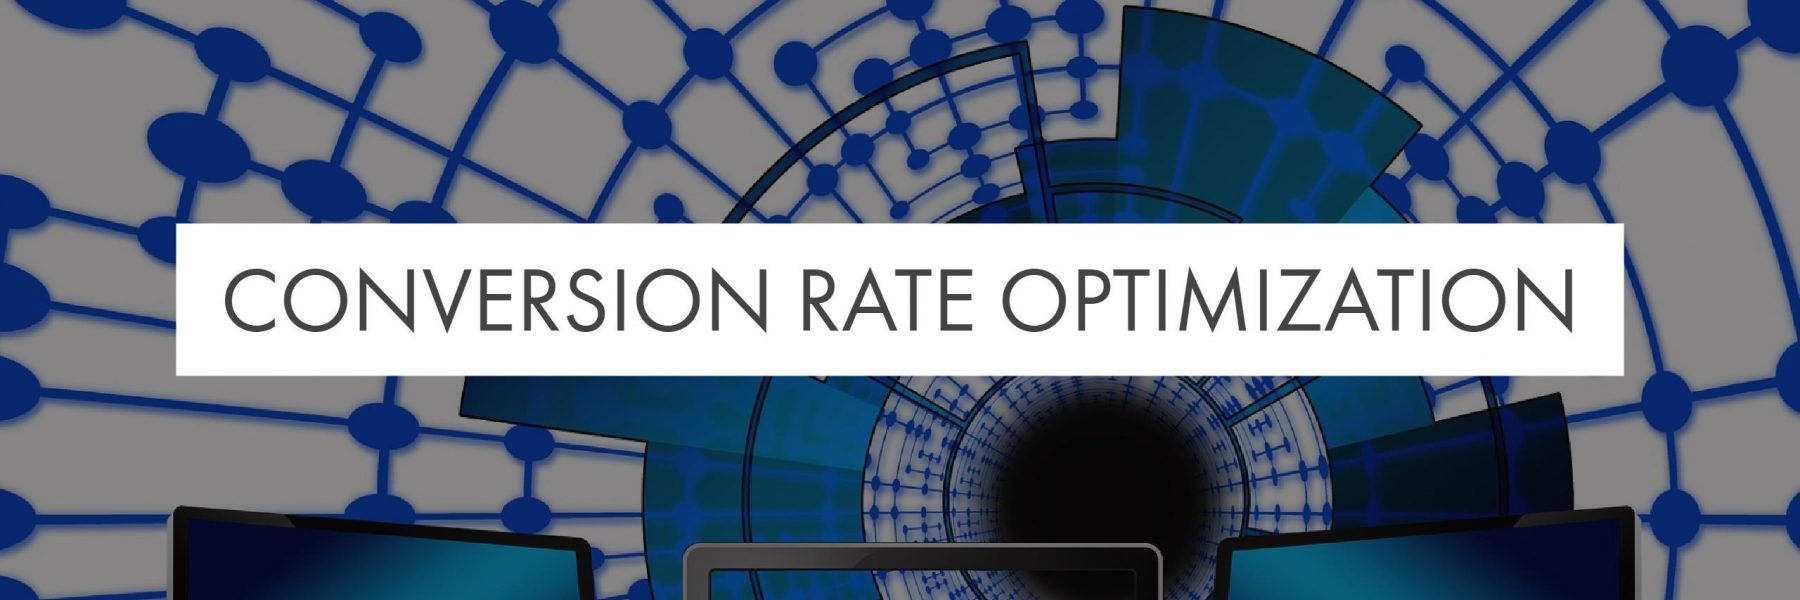 Conversion Rate Optimization Tips from The Pros